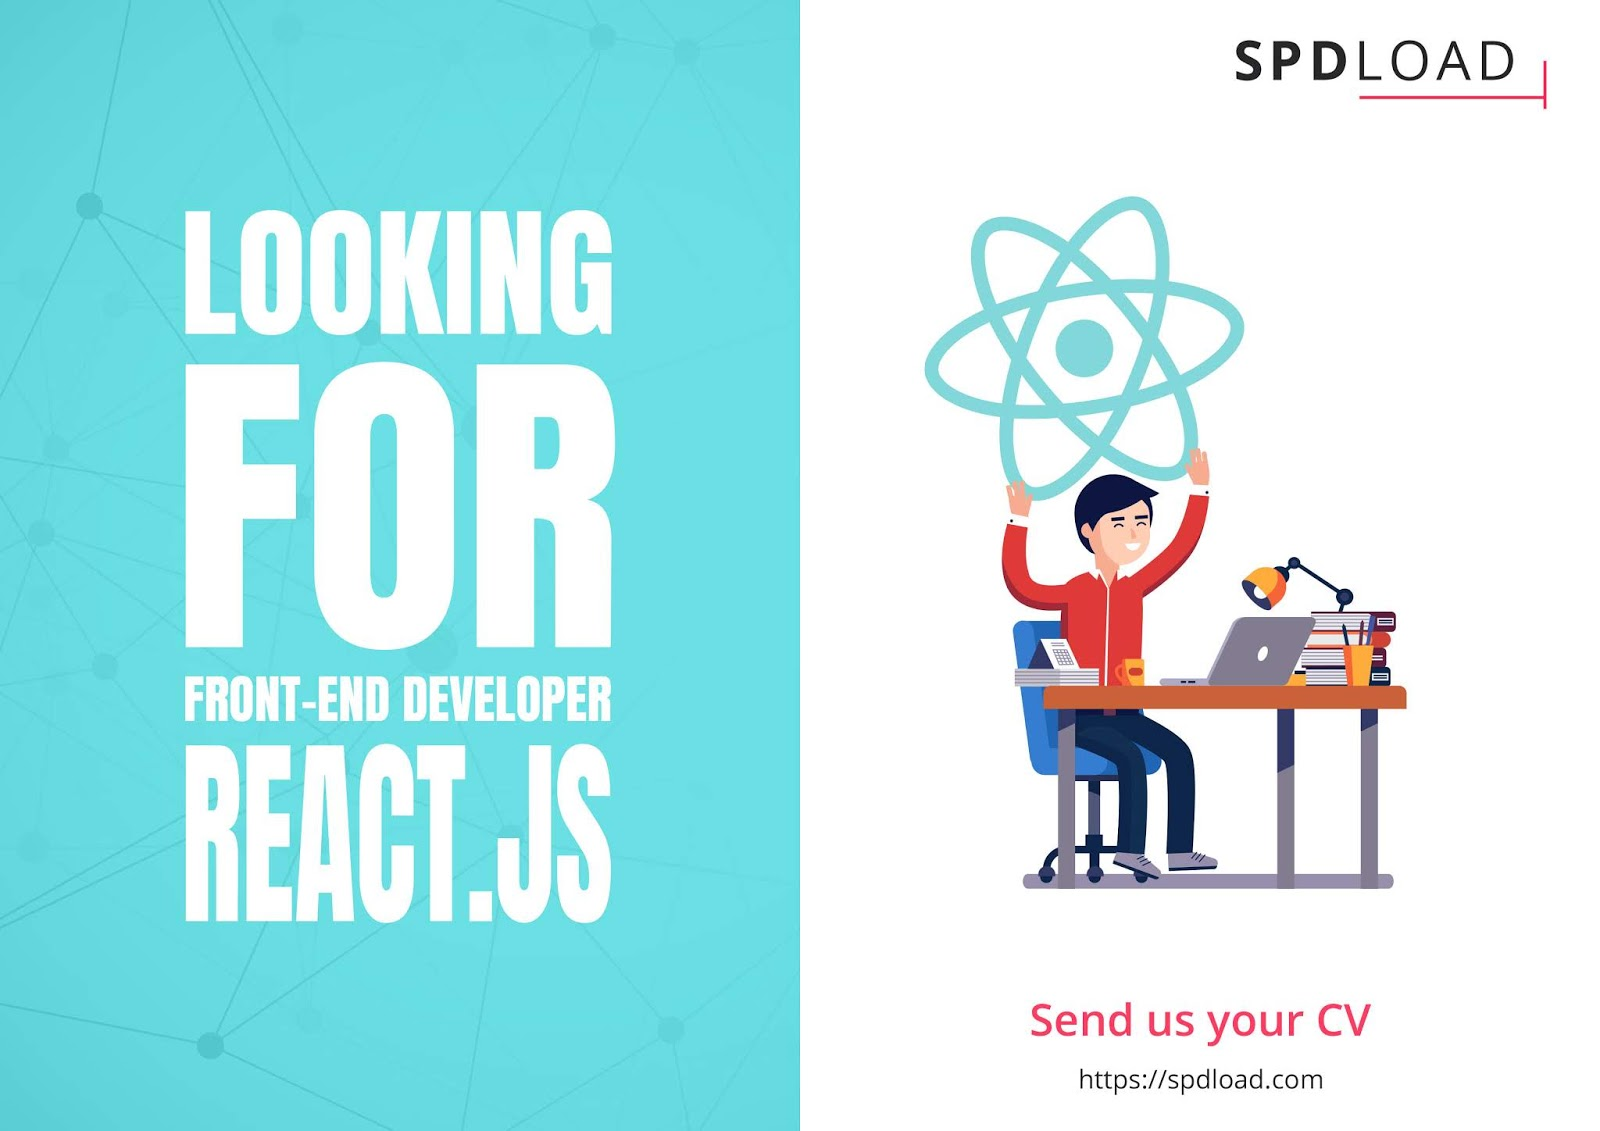 SPDLOAD looking for Front-End developer onboard (React.JS)